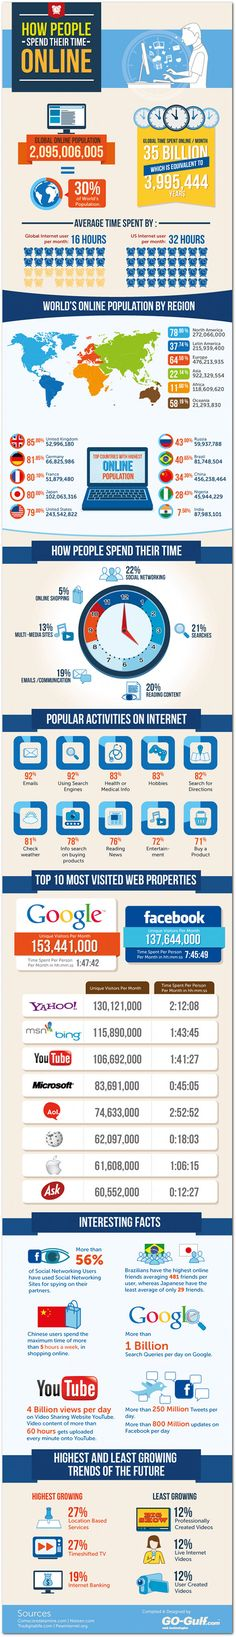 How Internet users worldwide spend time online | Articles